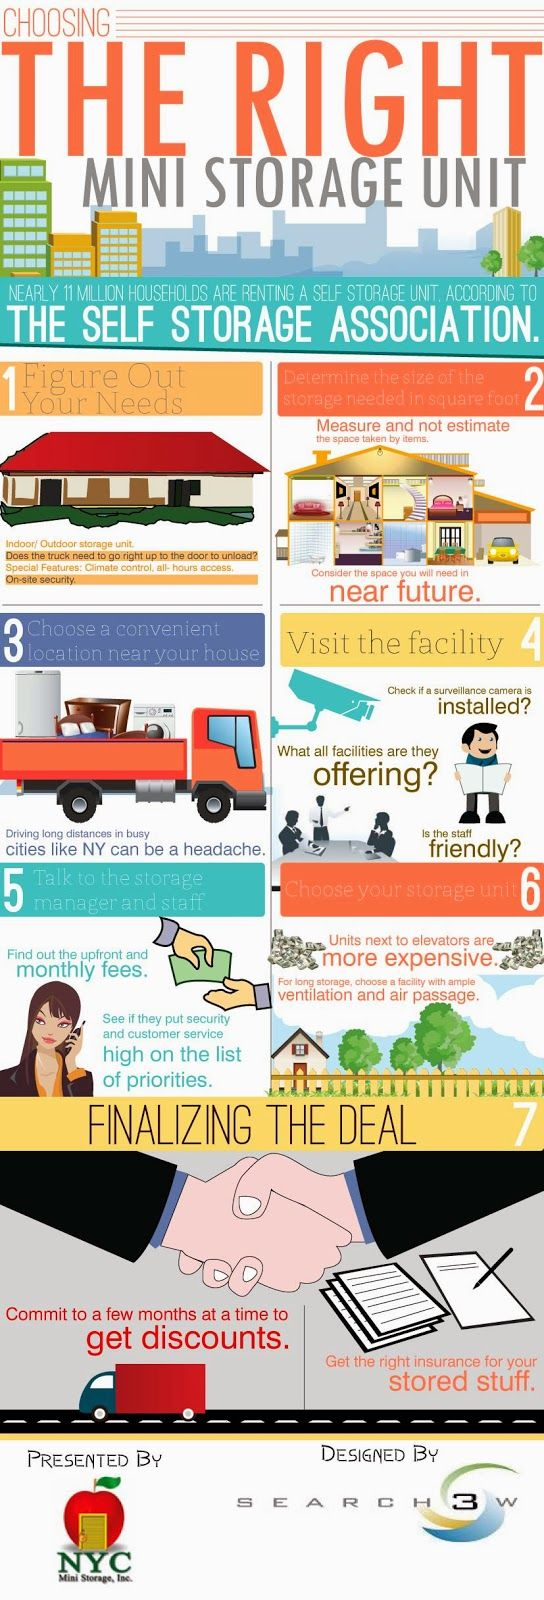 This infographic titled 'Choosing The Right Mini Storage Unit' has been created with the idea of showing the 7 steps to choose the mini storage unit which is most suitable to the hirer's needs.